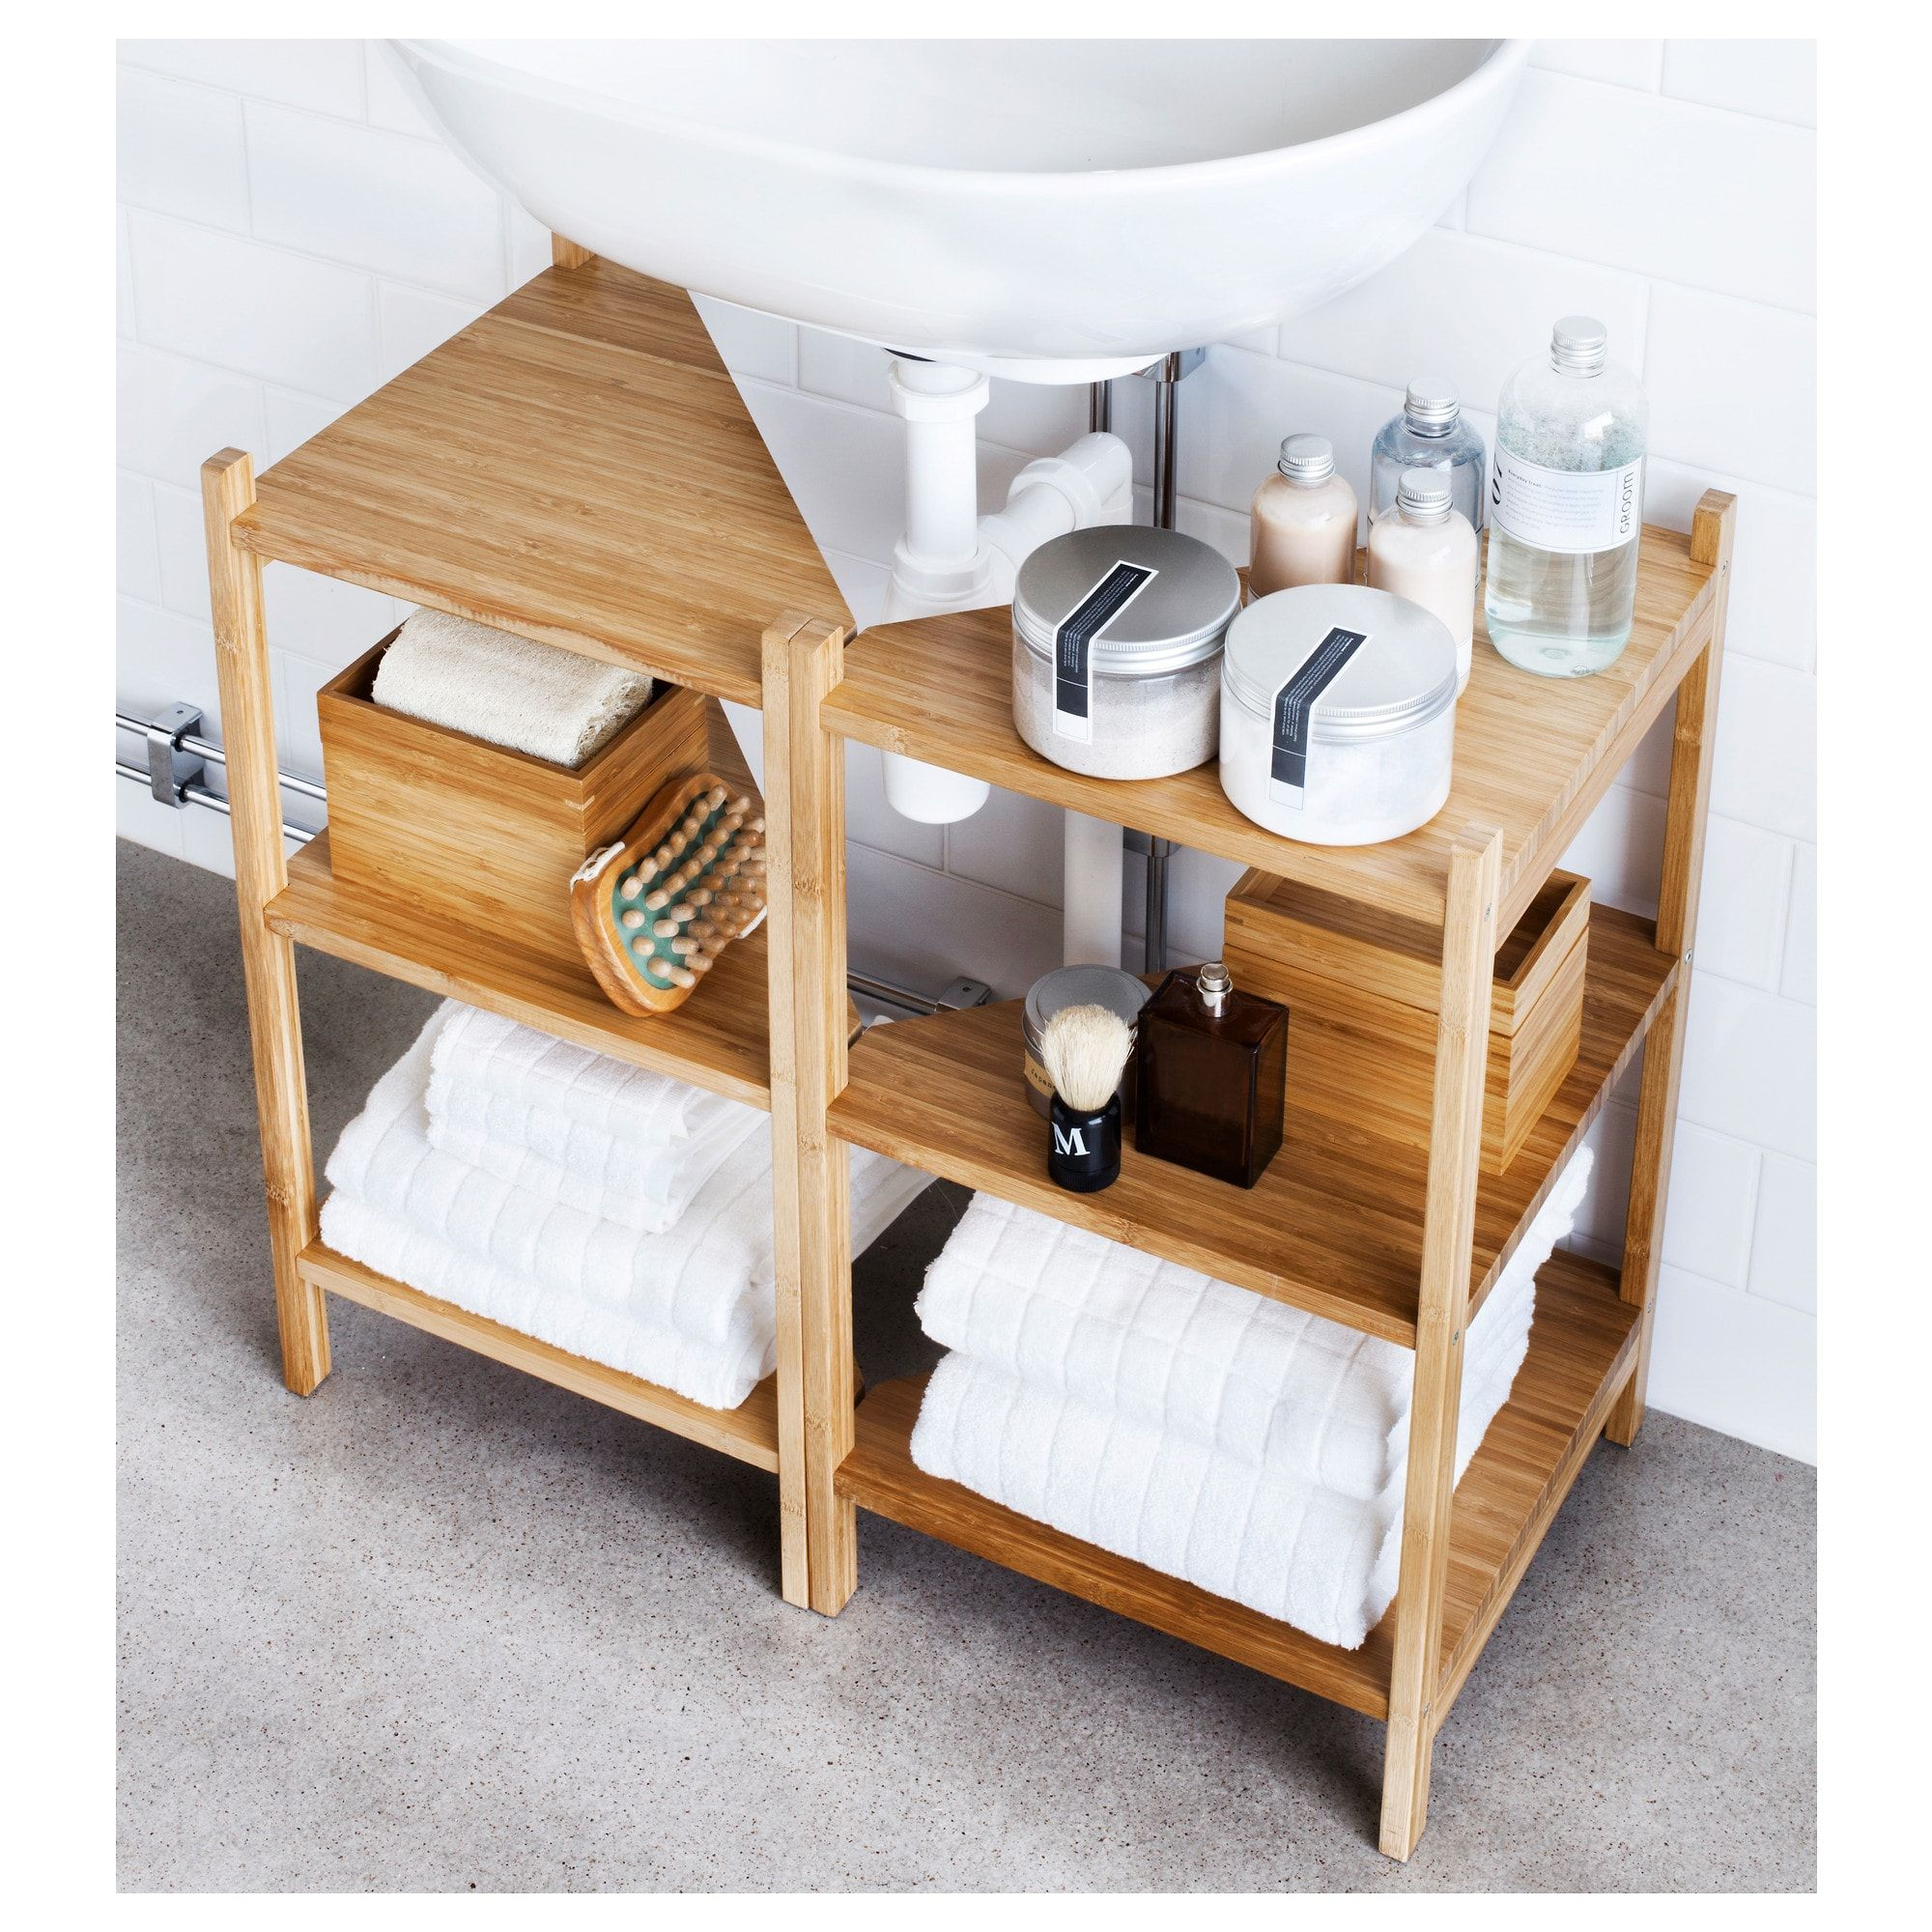 10 Ikea Hacks That Were Made For Small Bathrooms Small Bathroom Storage Bathroom Storage Organization Sink Shelf